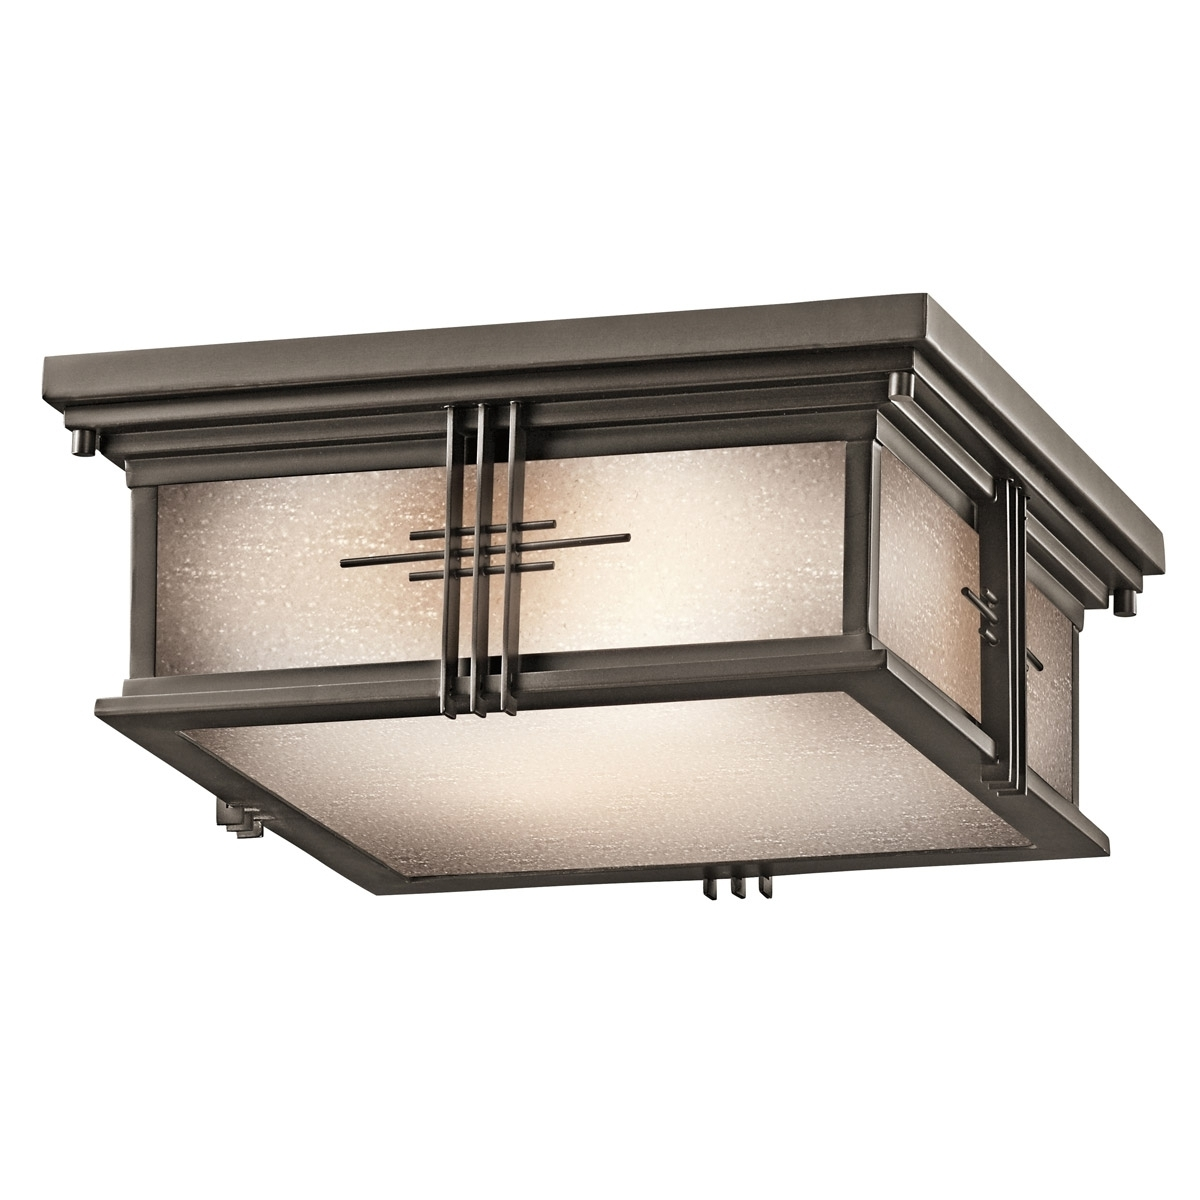 Well Known Craftsman Style Outdoor Ceiling Lights Inside Mission Style Outdoor Ceiling Lights • Outdoor Lighting (View 17 of 20)